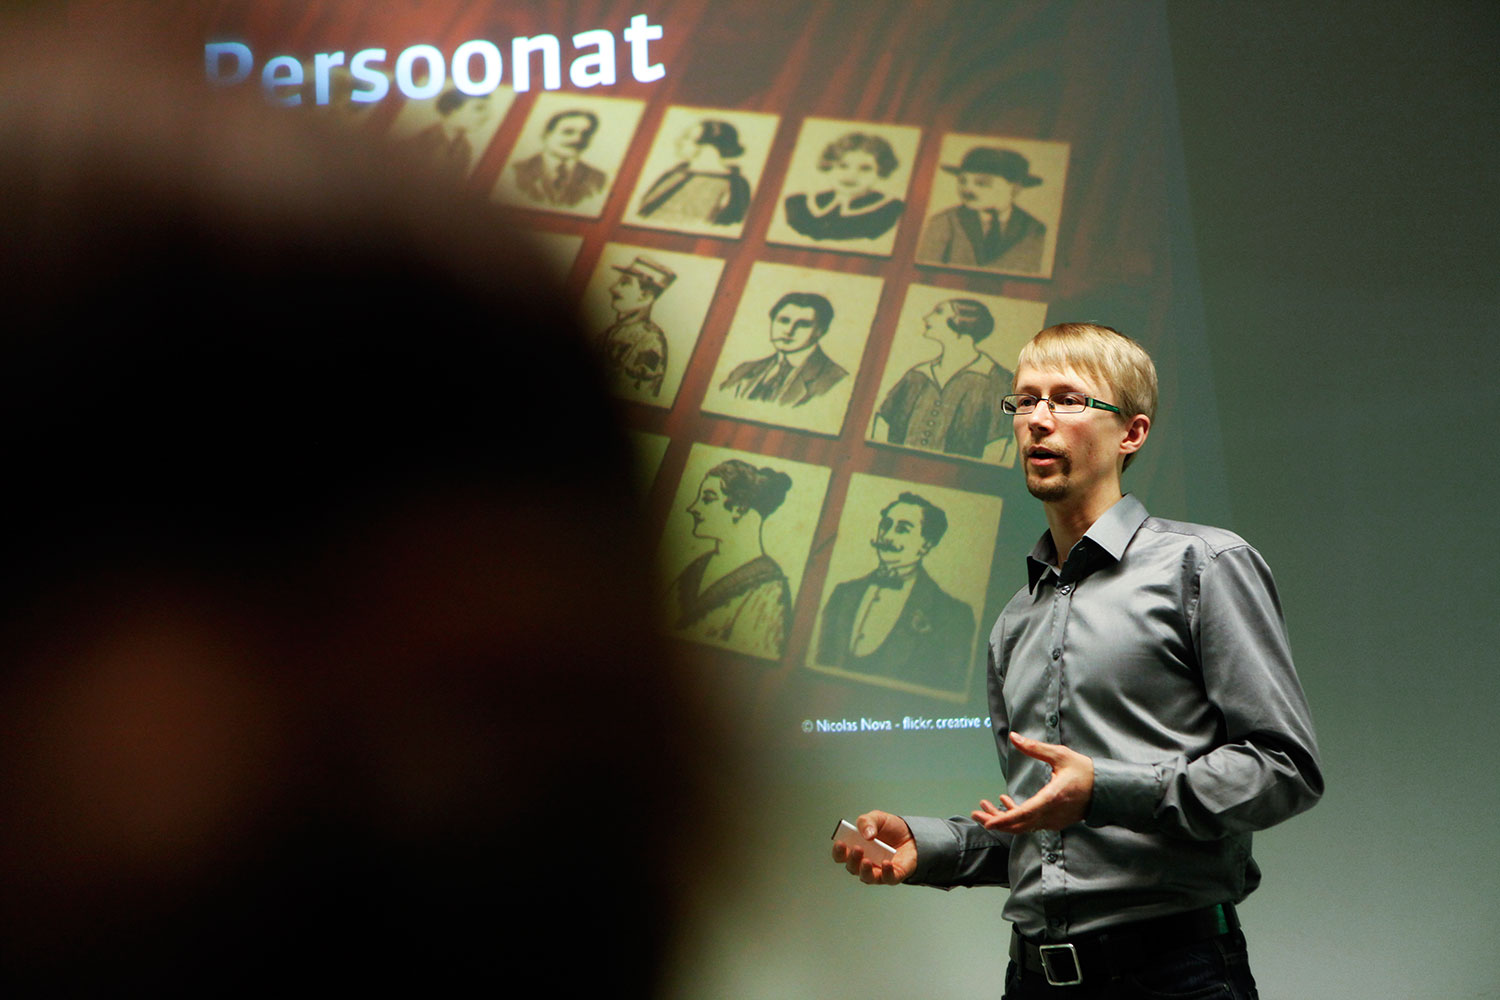 Giving a talk on Personas